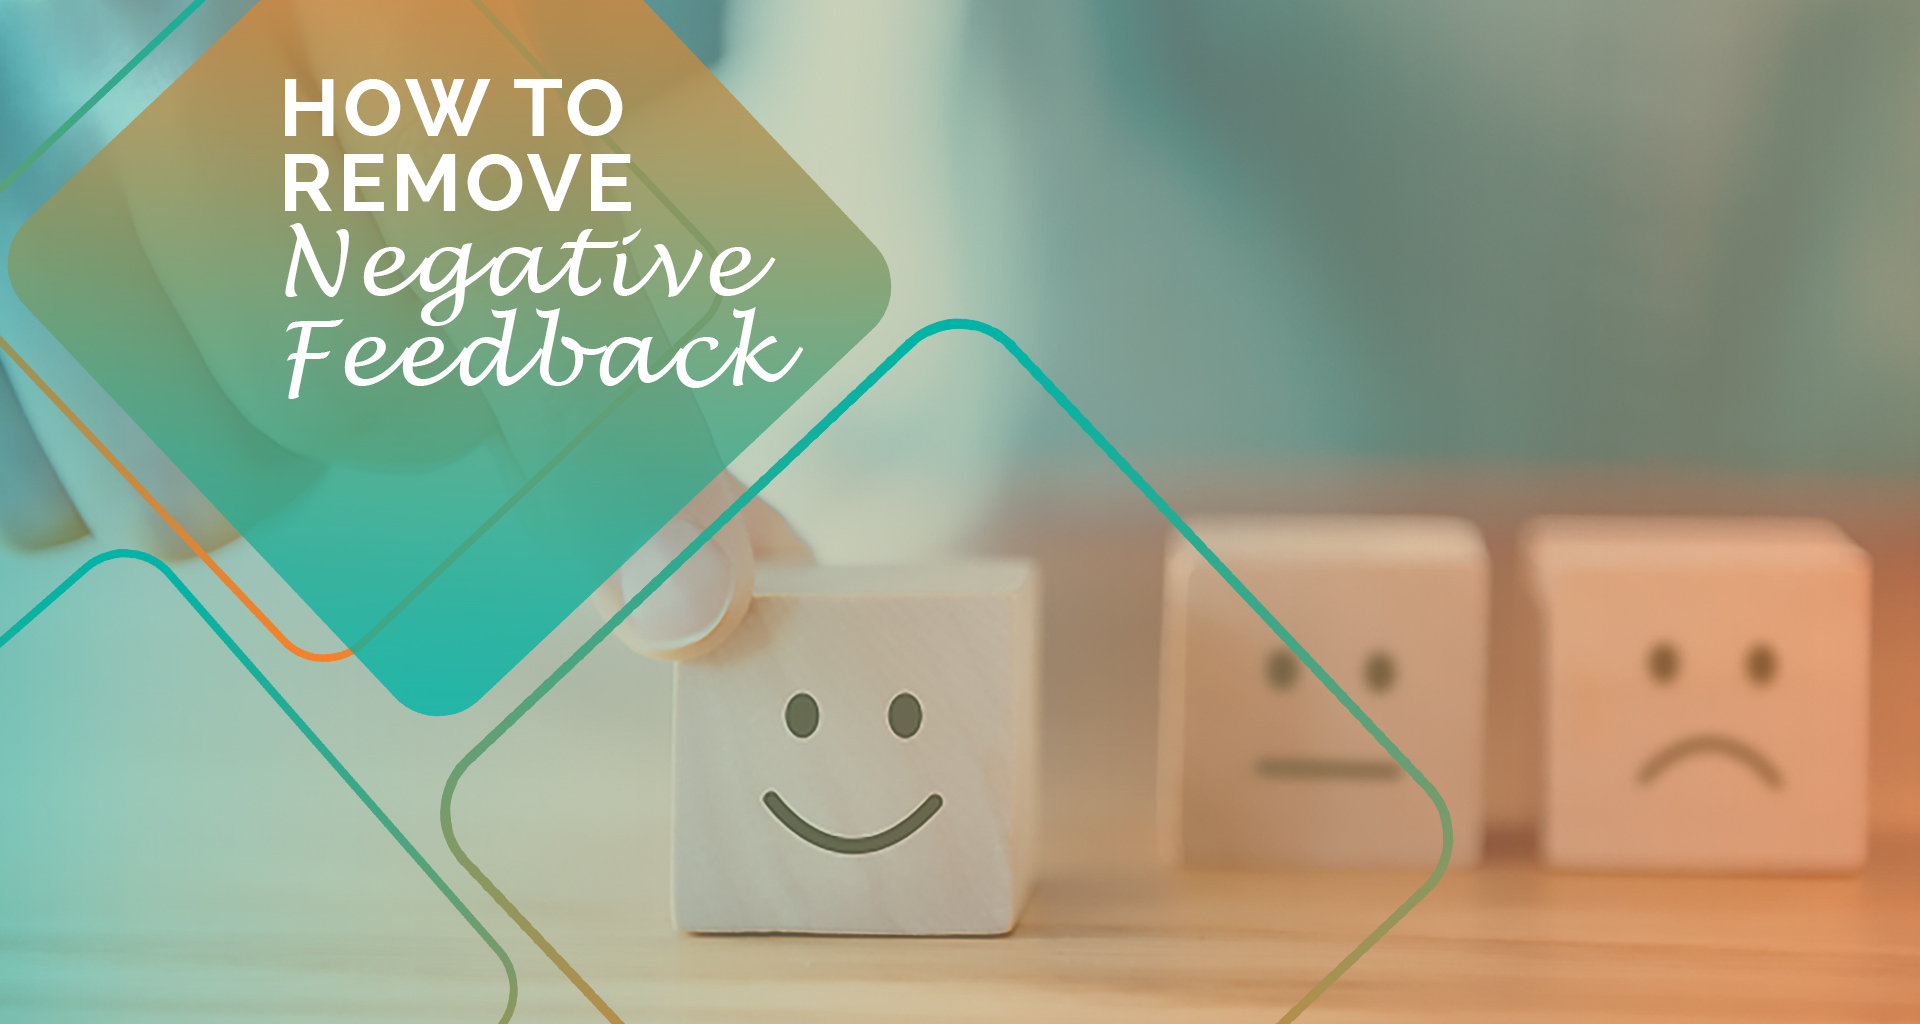 3 Ways To Remove Negative Feedback On Amazon